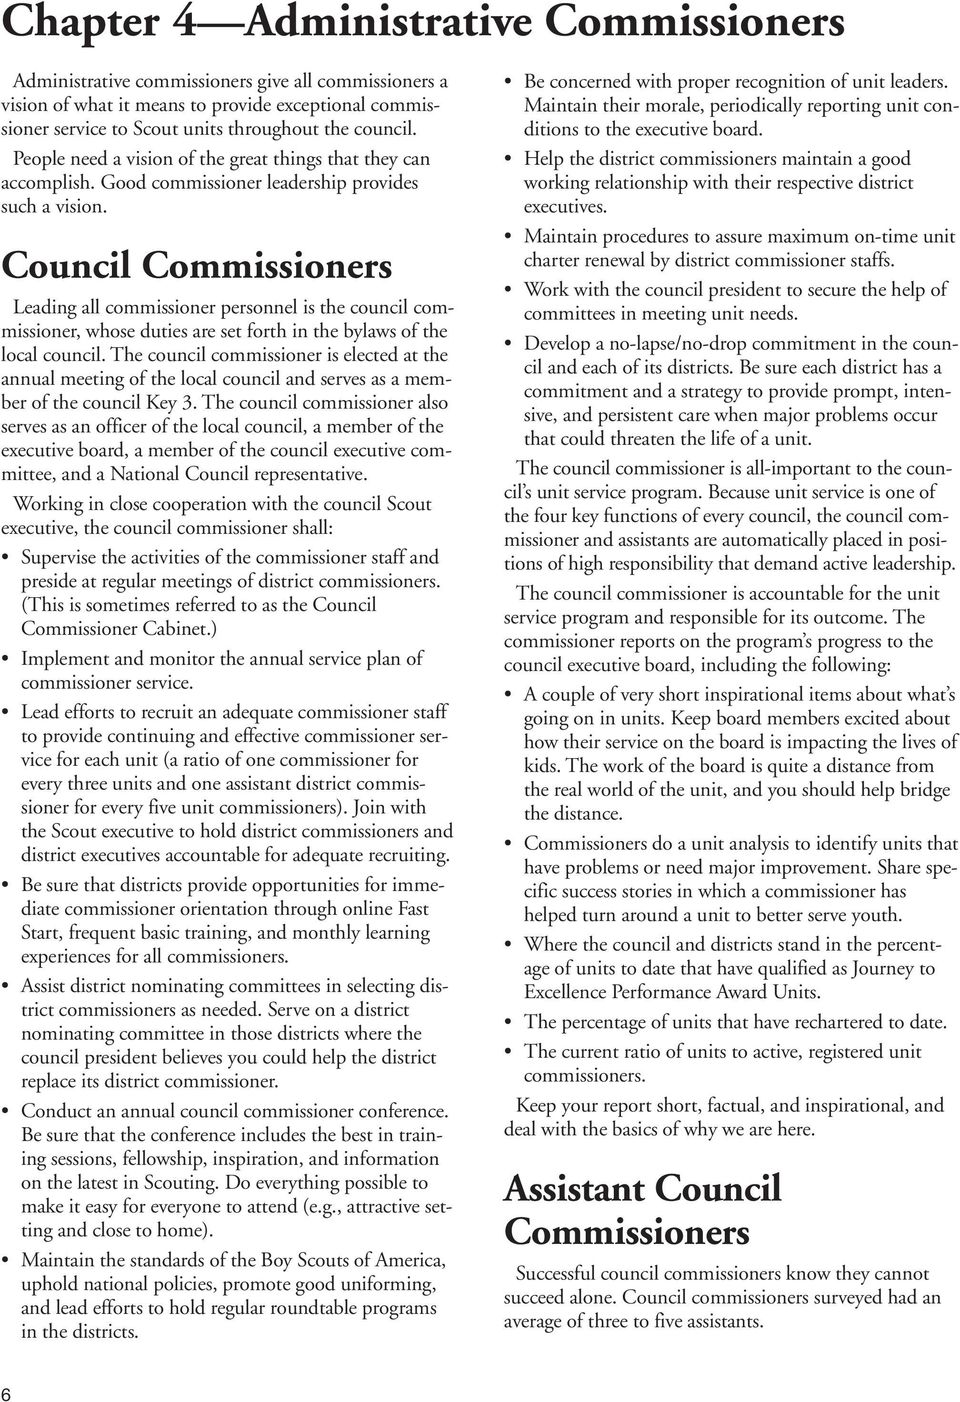 Council Commissioners Leading all commissioner personnel is the council commissioner, whose duties are set forth in the bylaws of the local council.